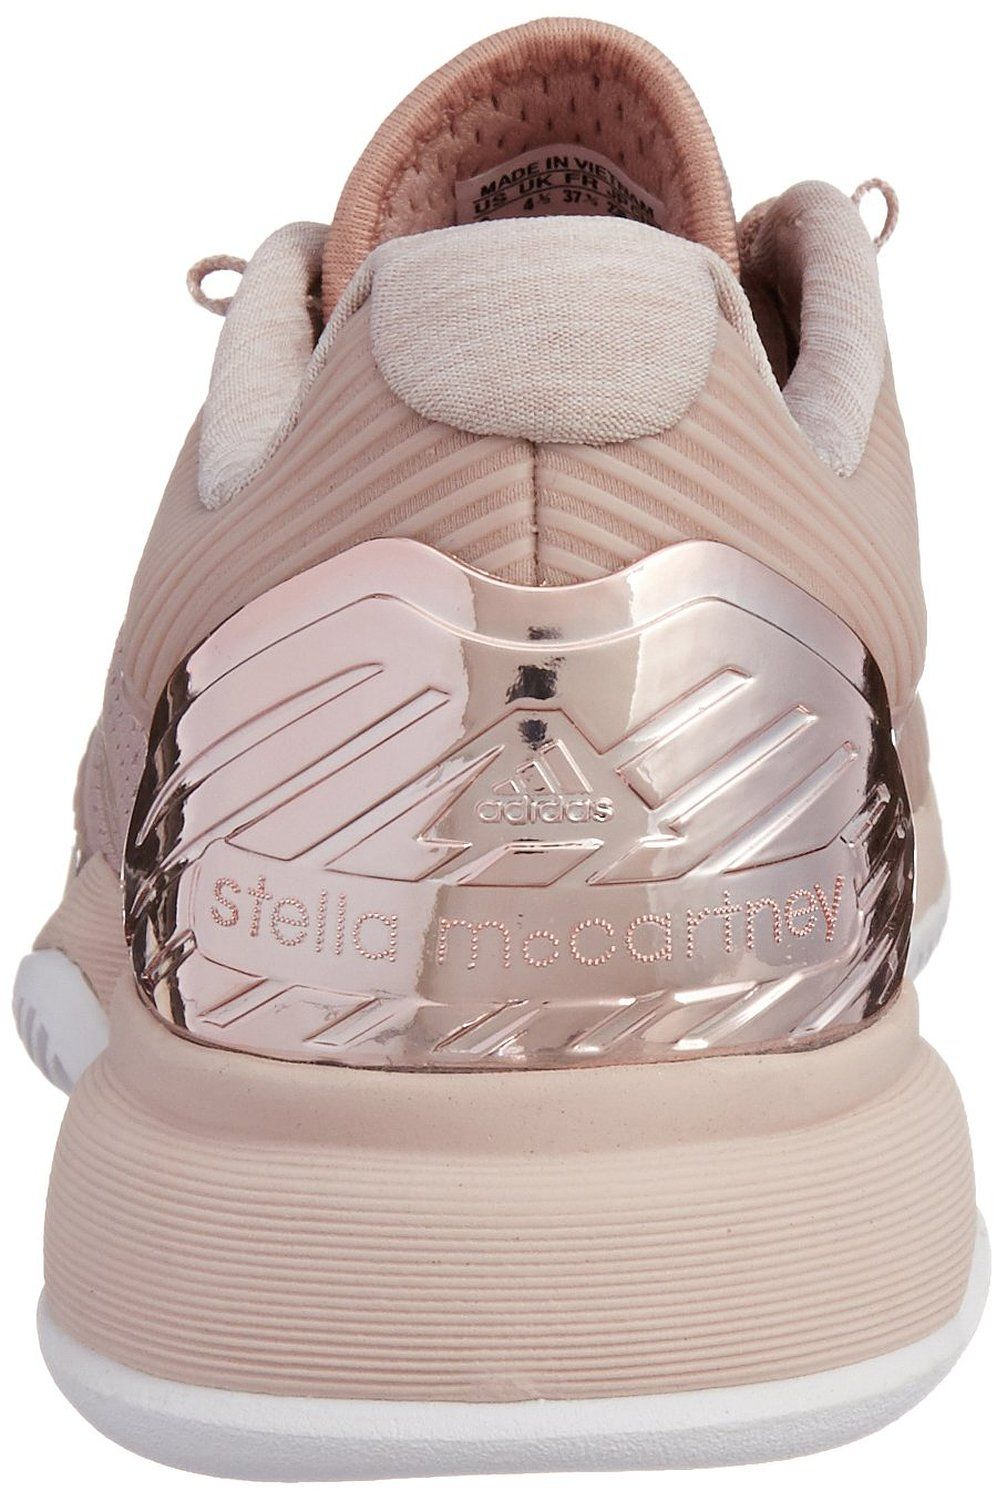 12bf2d3f14c1 adidas Stella McCartney Barricade Ladies Tennis Shoe